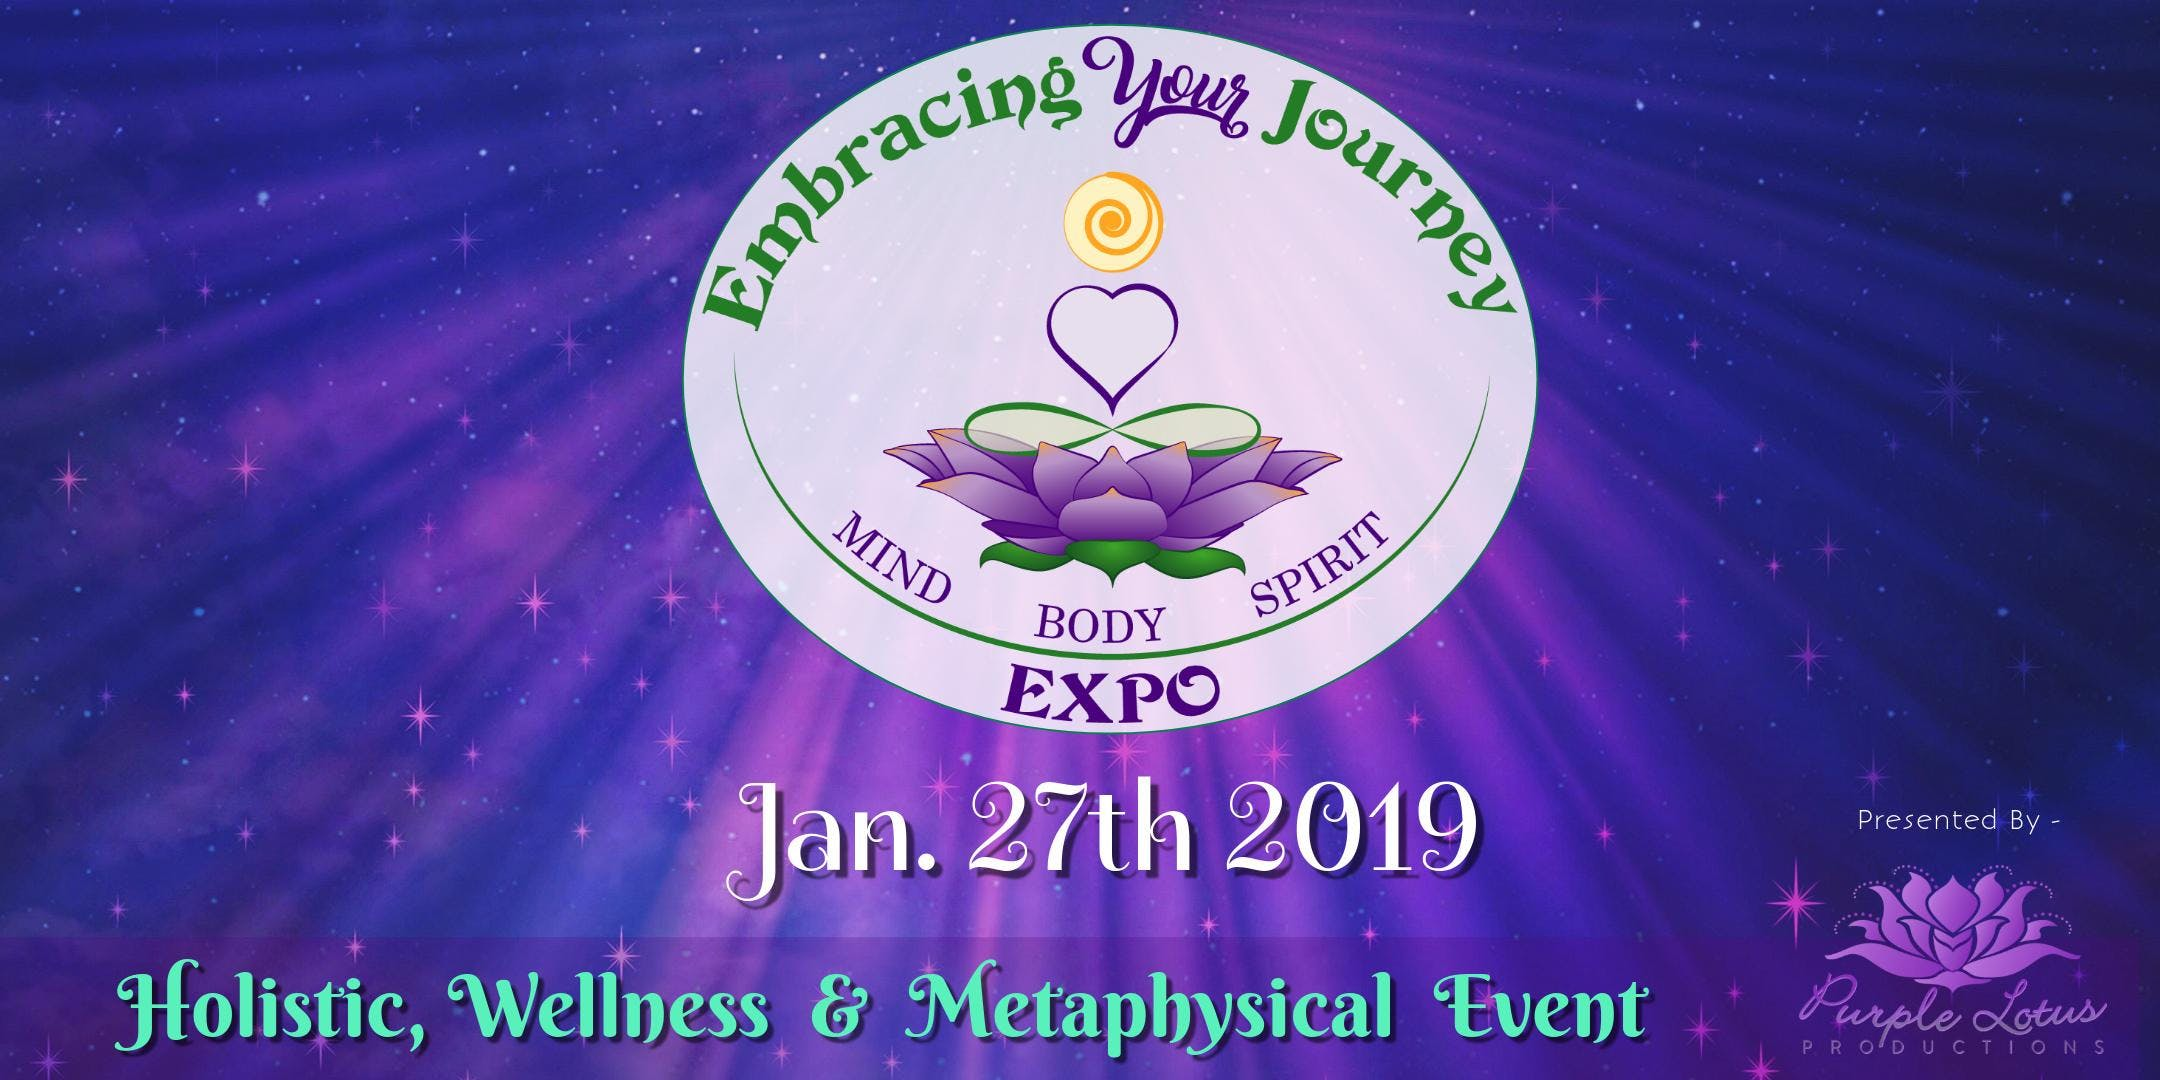 Embracing Your Journey Expo - January 27th 2019